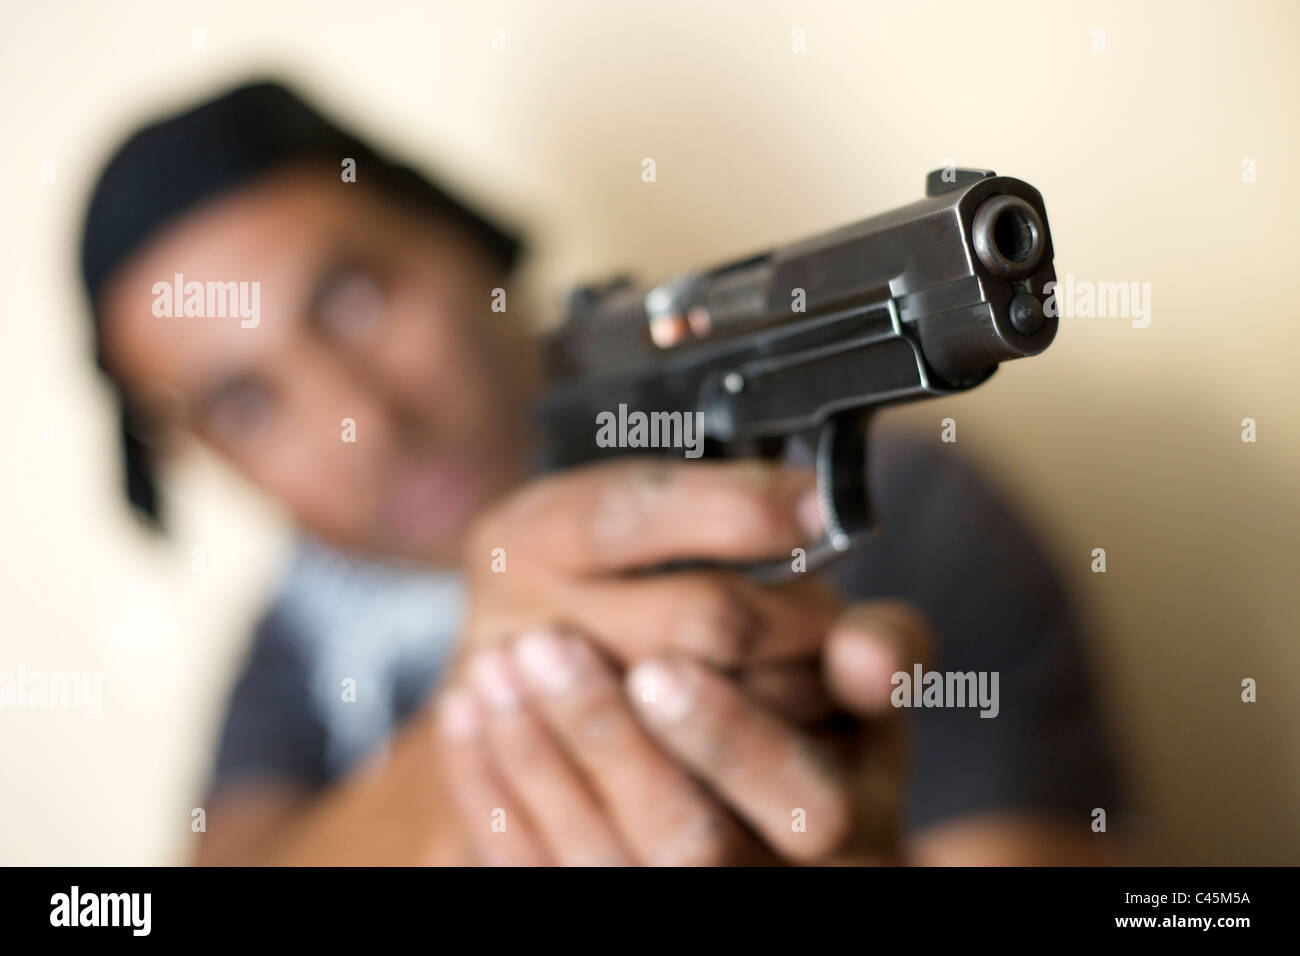 A man with a baseball cap pointing a pistol just off camera. - Stock Image